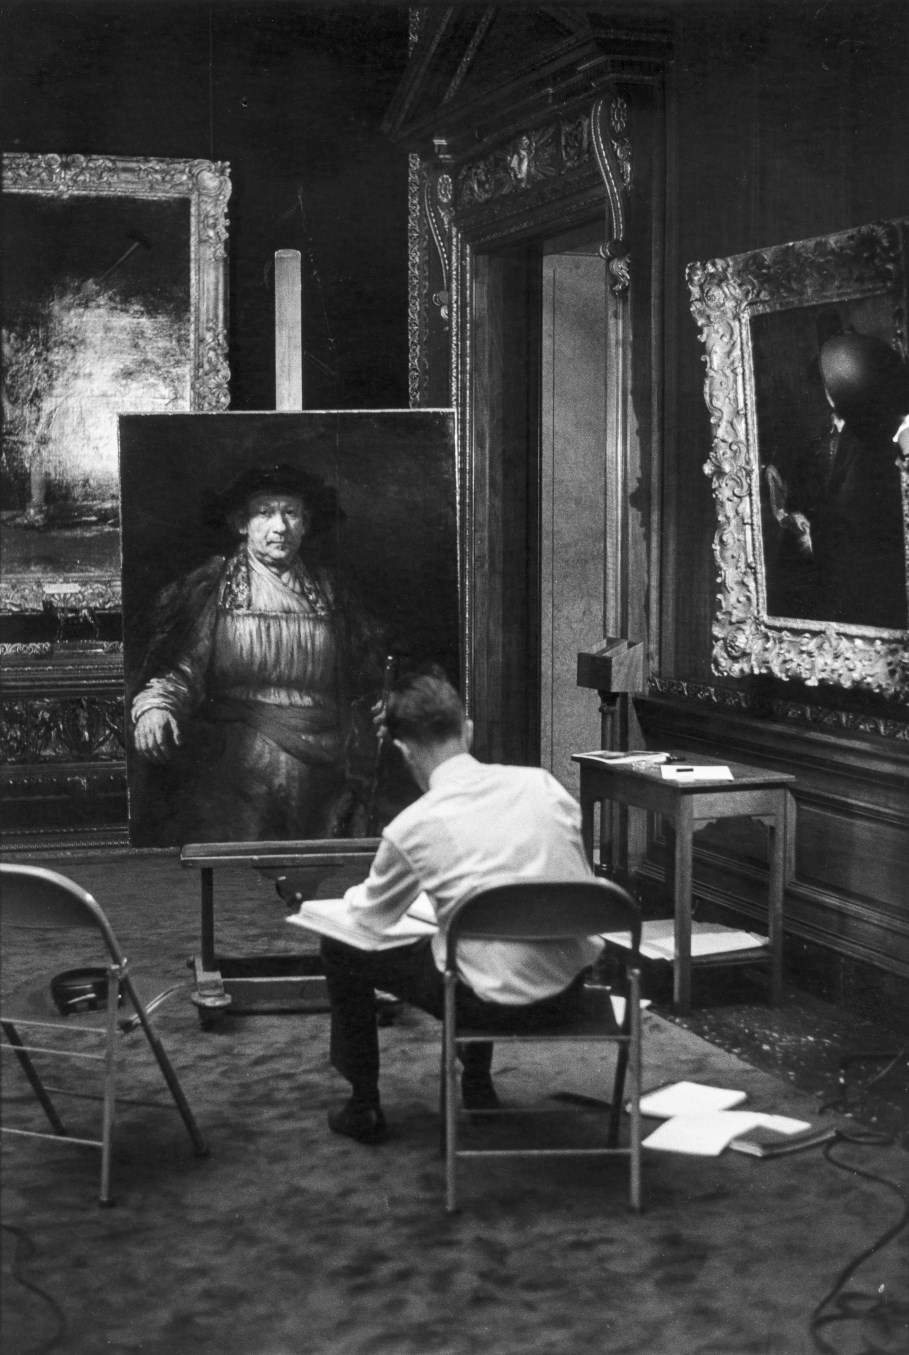 Een lid van het Rembrandt Research Project, Joshua Bruyn, bestudeert Rembrandts Zelfportret in The Frick Collection in New York in 1969 (archief Rembrandt Research Project, RKD).